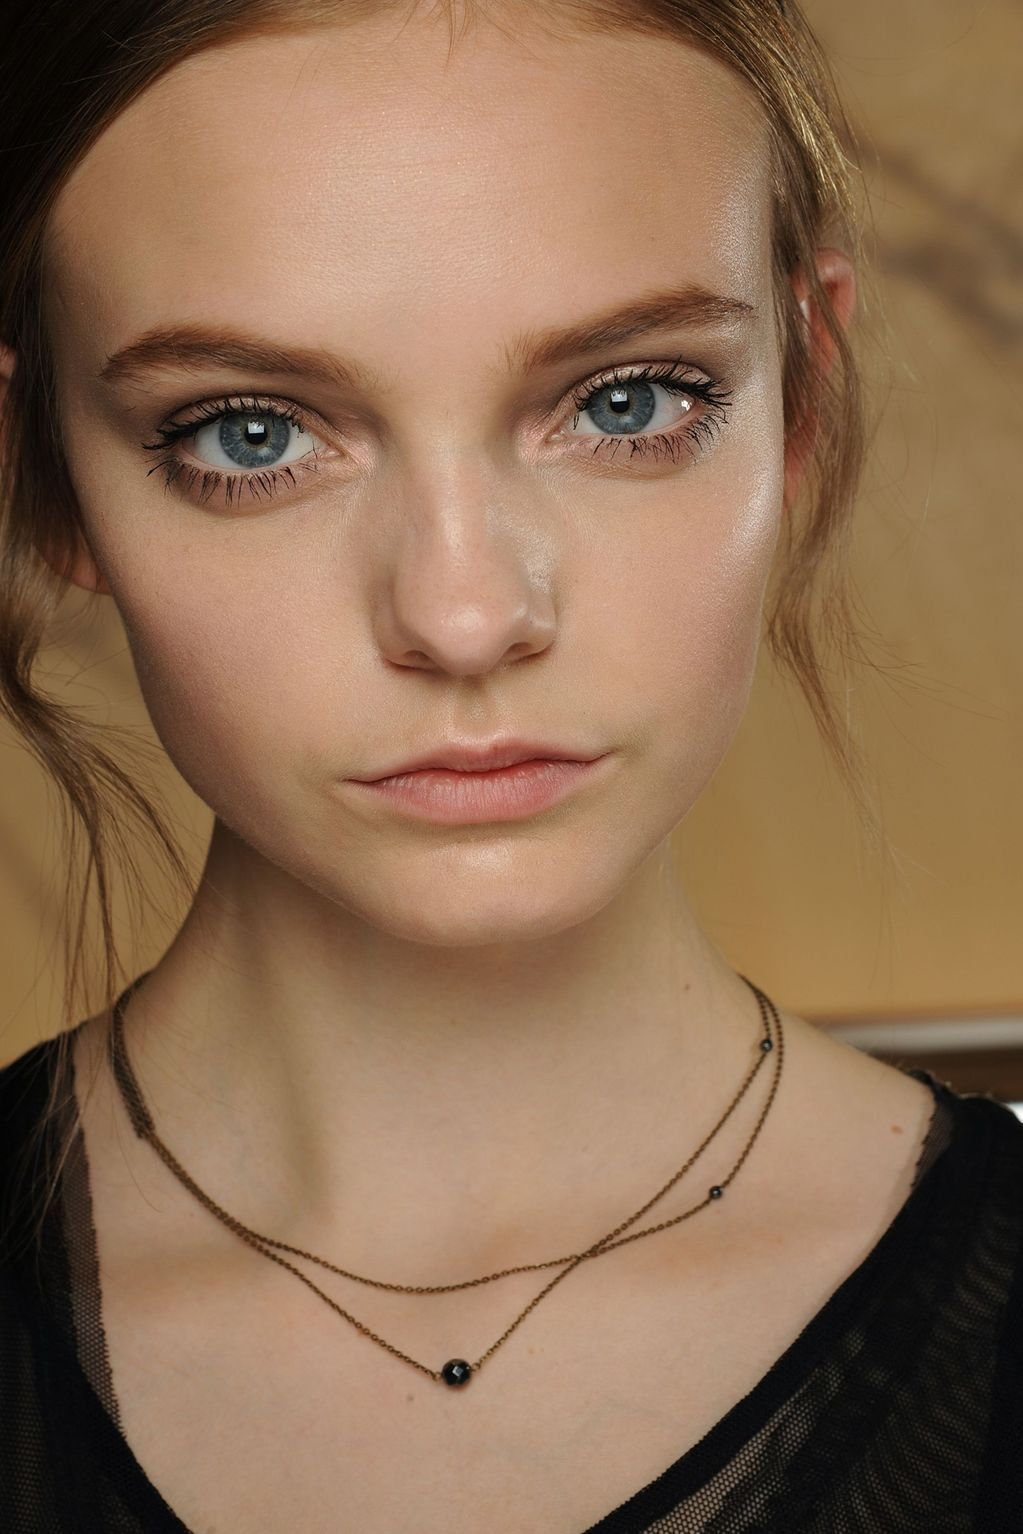 Nose piercing ripped out  Nimue Smith  Modellen  Pinterest